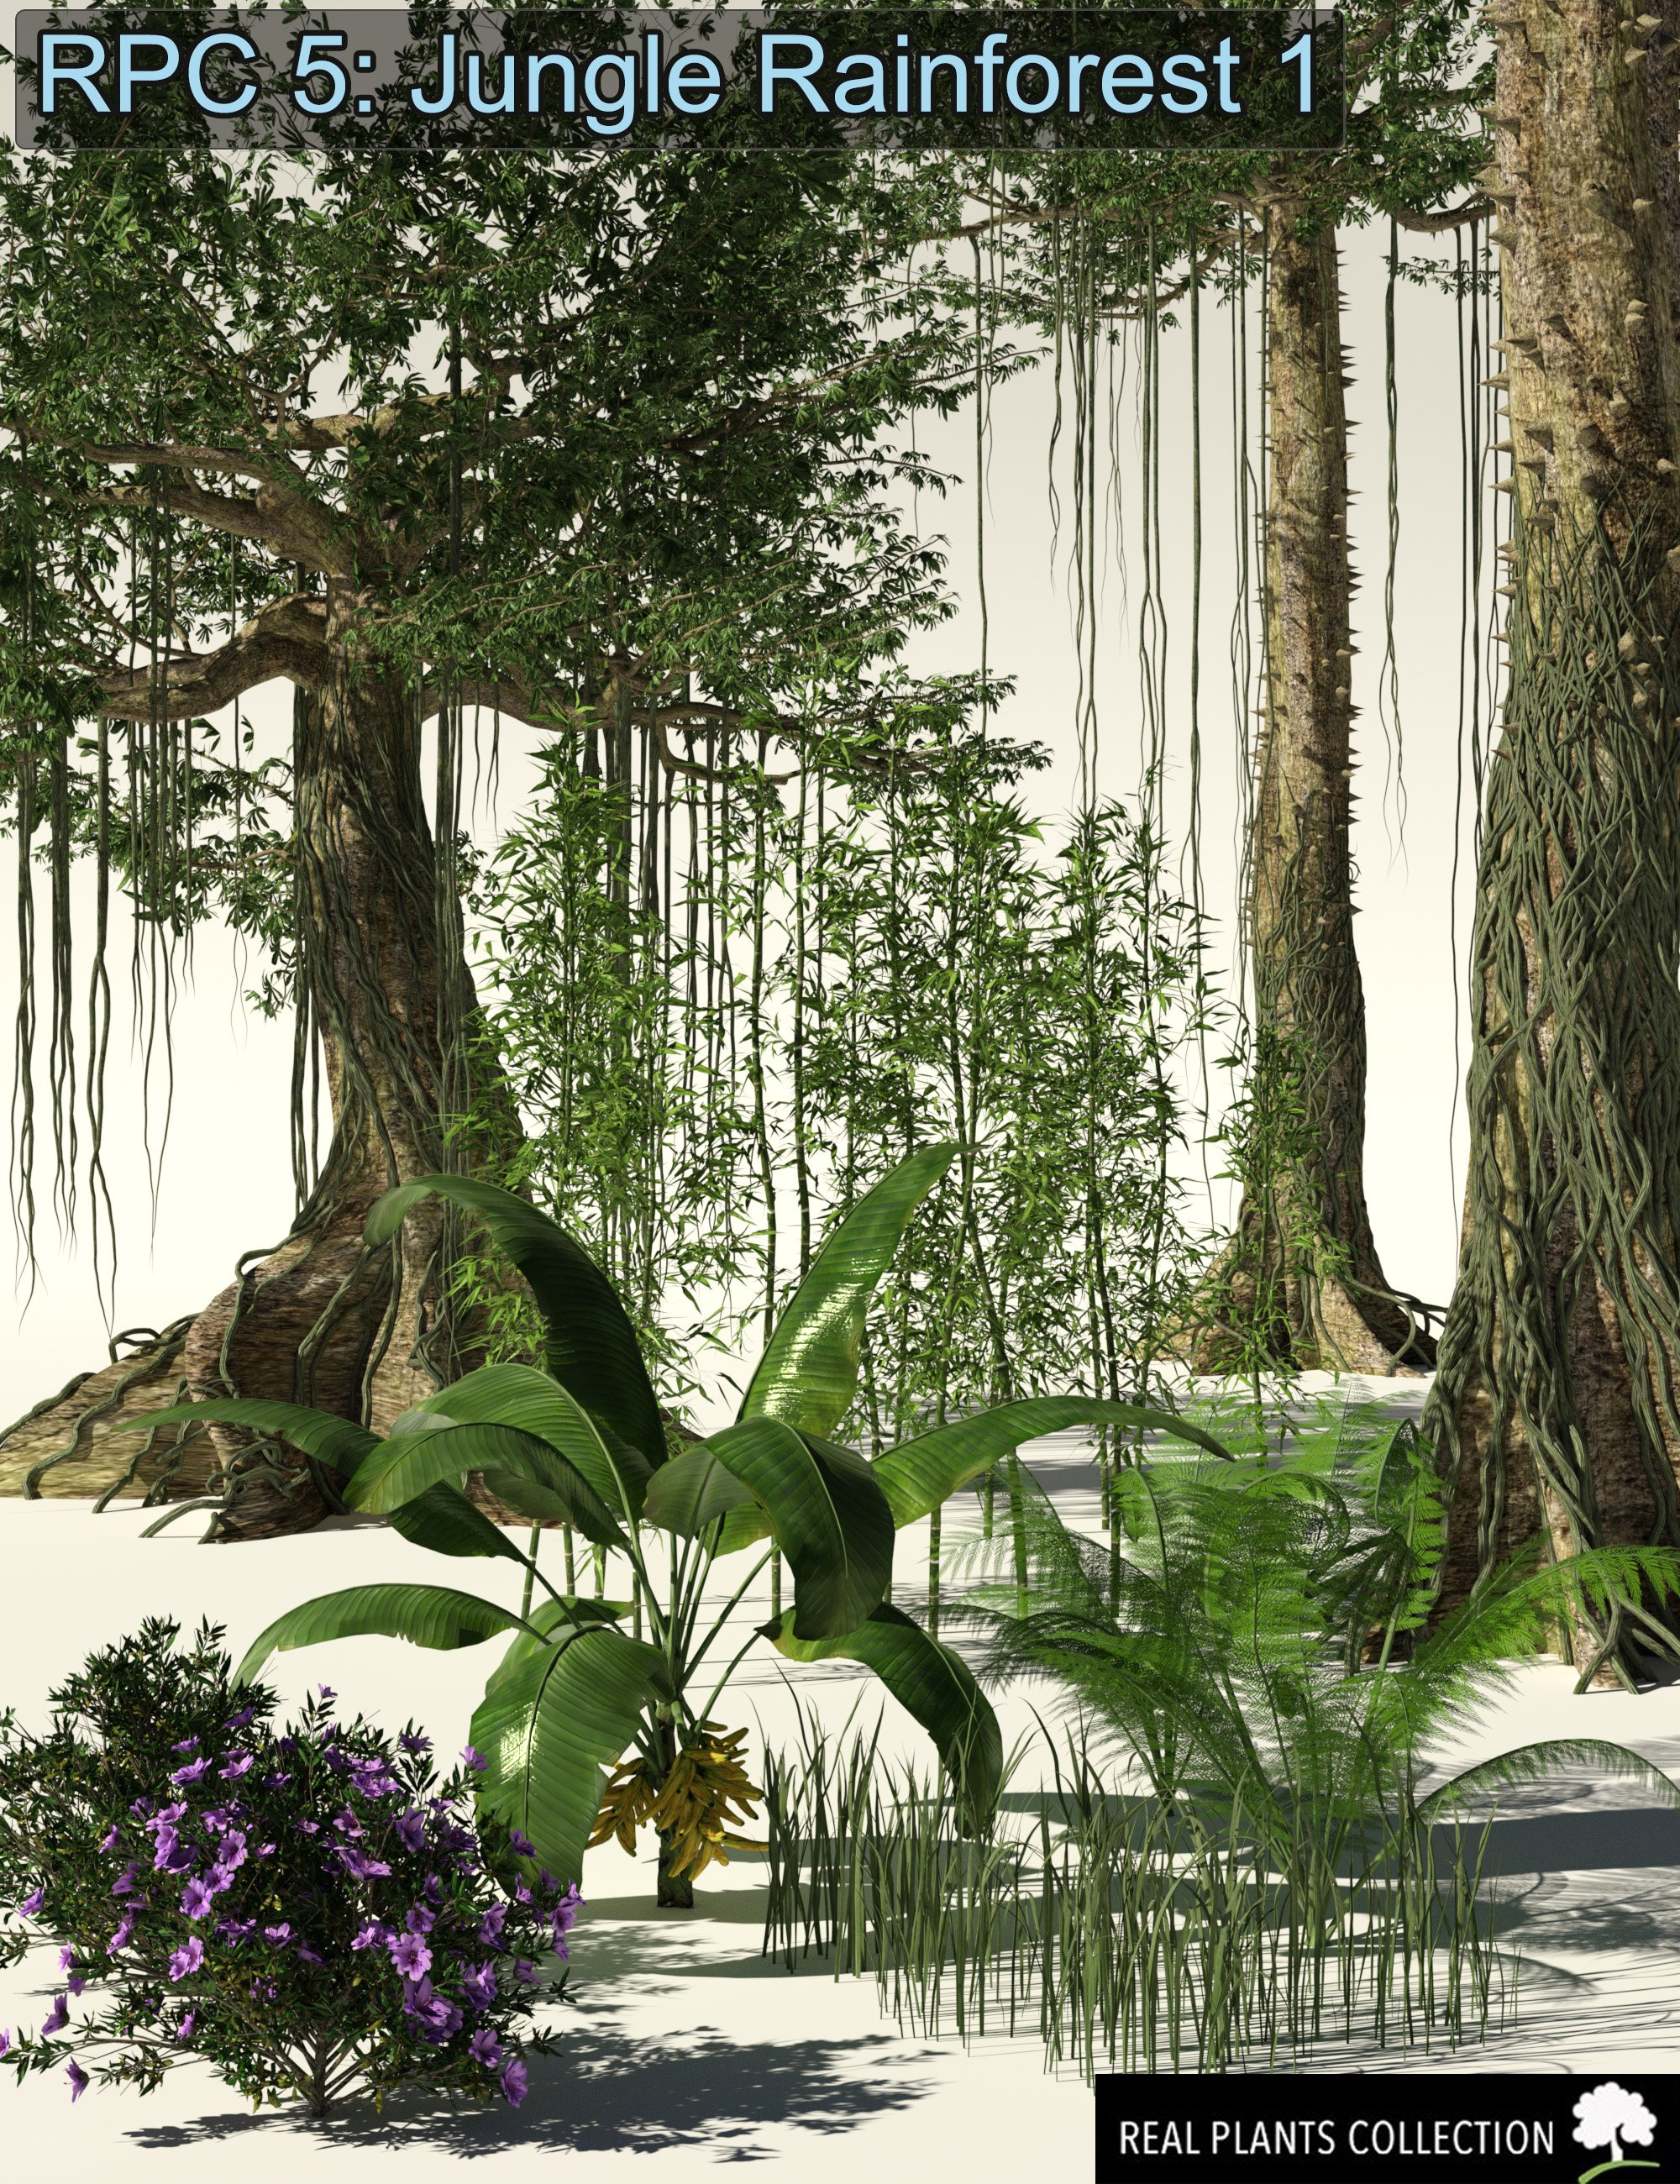 RPC Volume 5: Jungle Rainforest 1 for Daz Studio and Vue by: Alessandro_AMLMX3D, 3D Models by Daz 3D